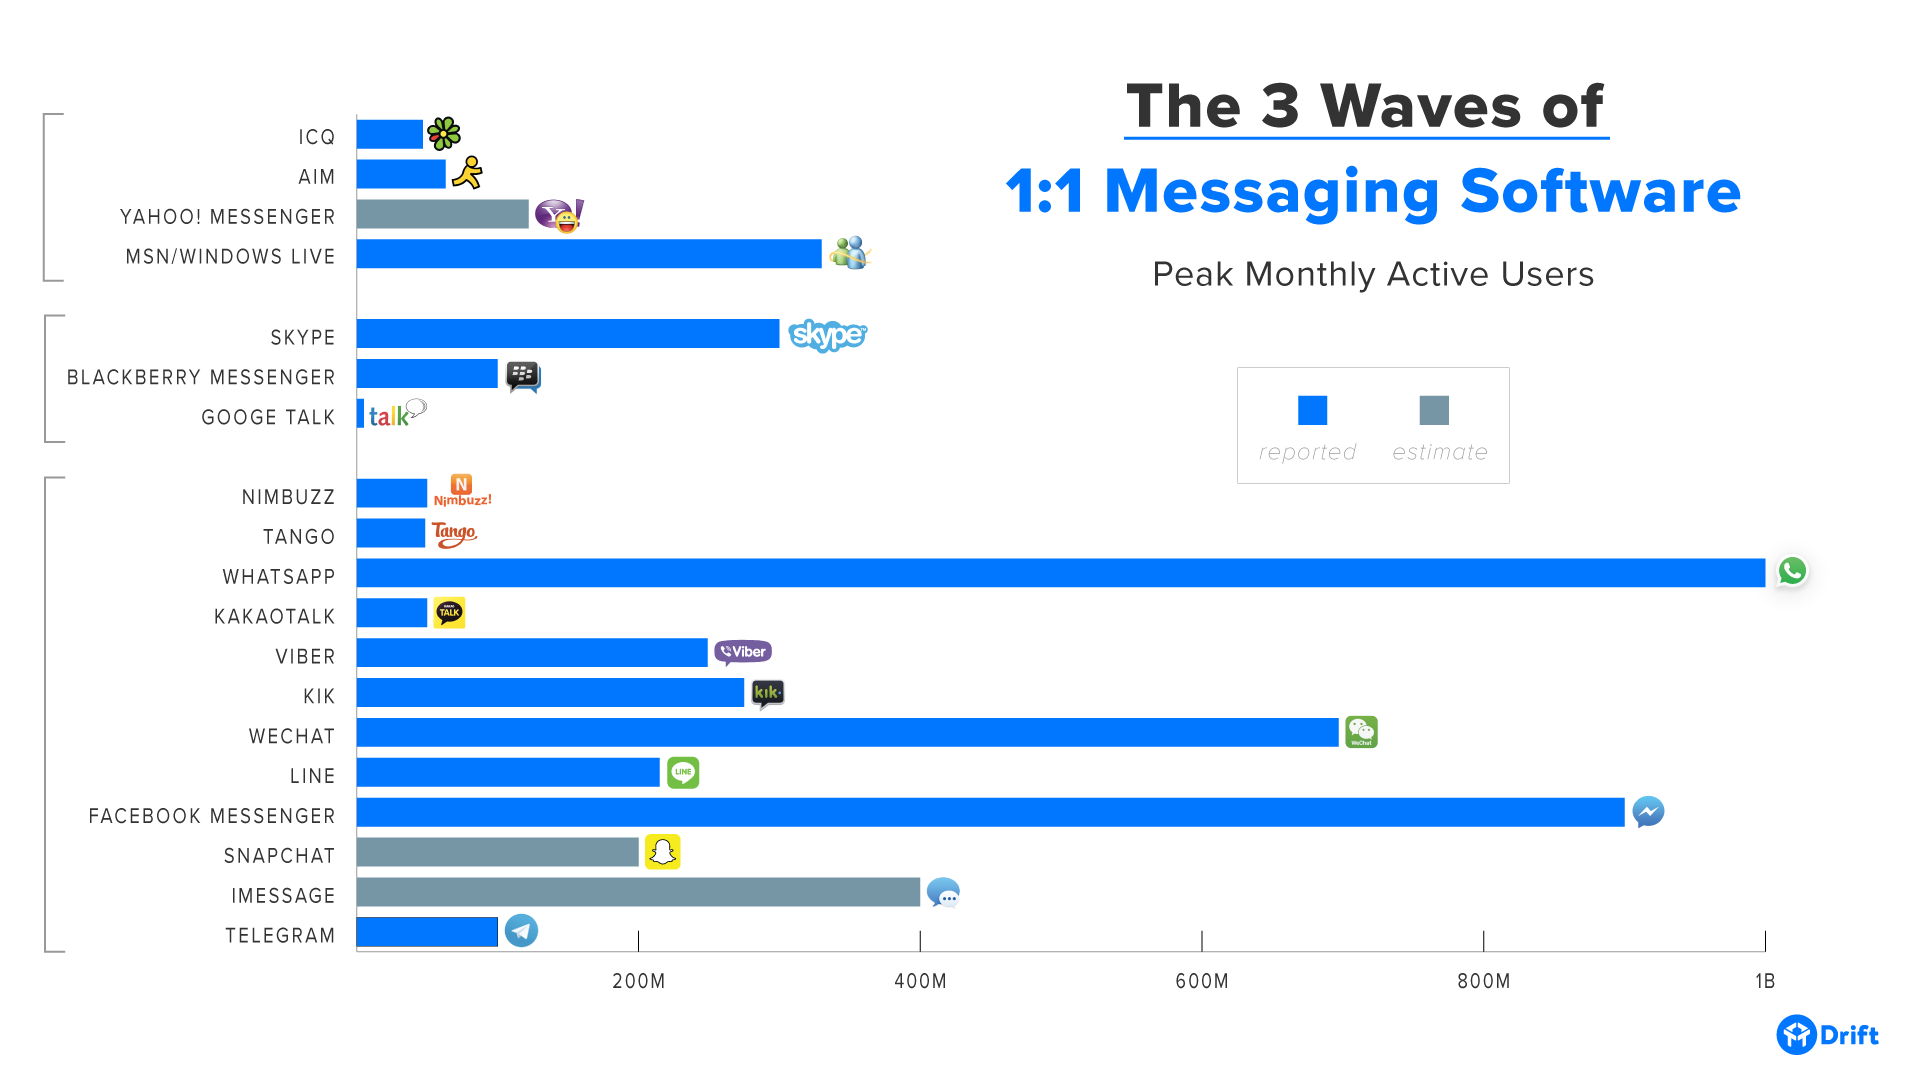 3-waves-messaging-software-active-users.png